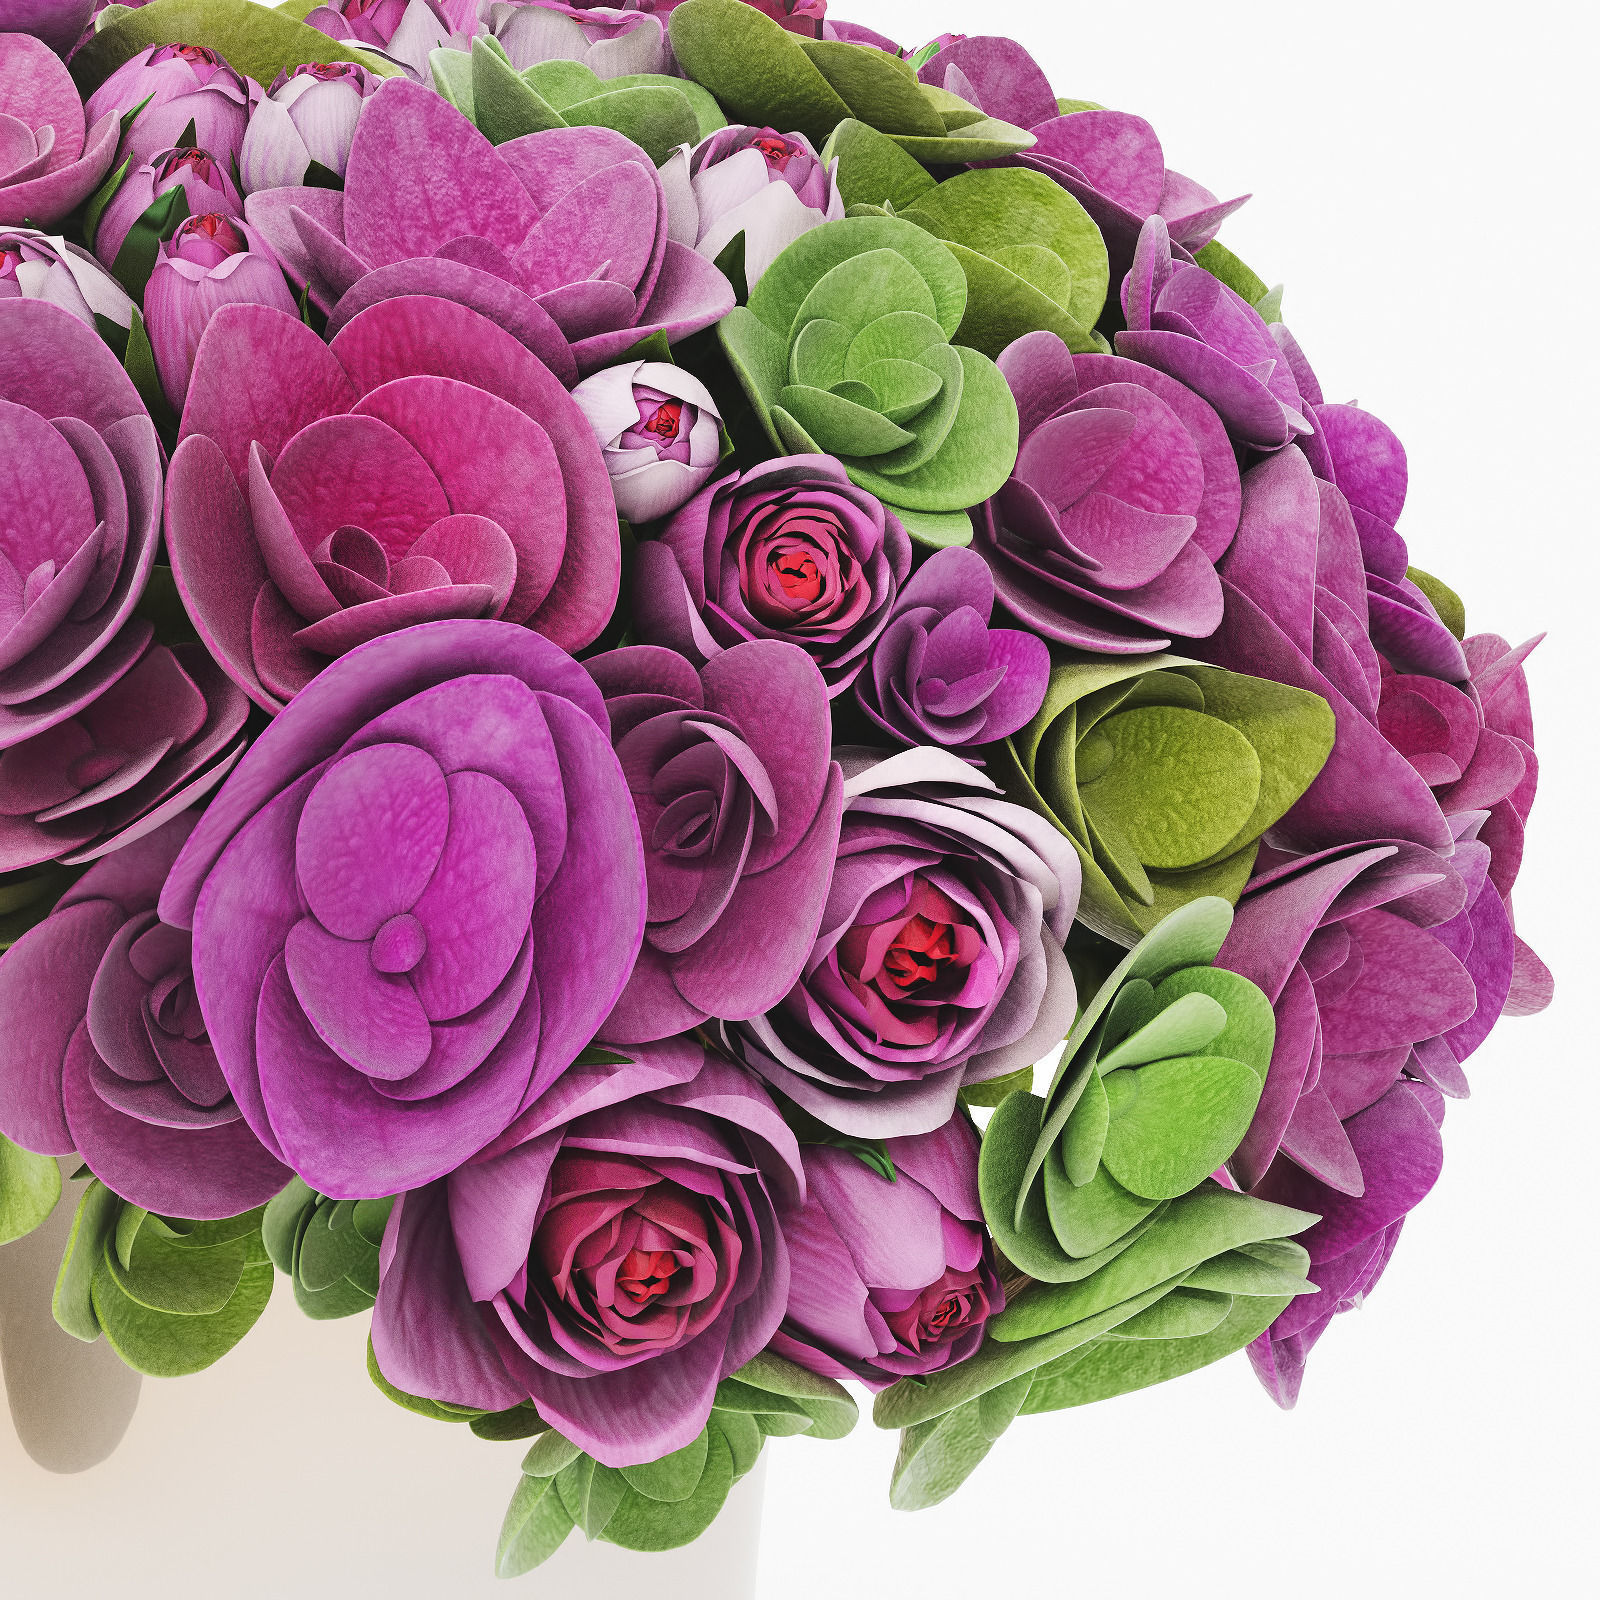 3D Bouquet of roses and hydrangea flowers   CGTrader